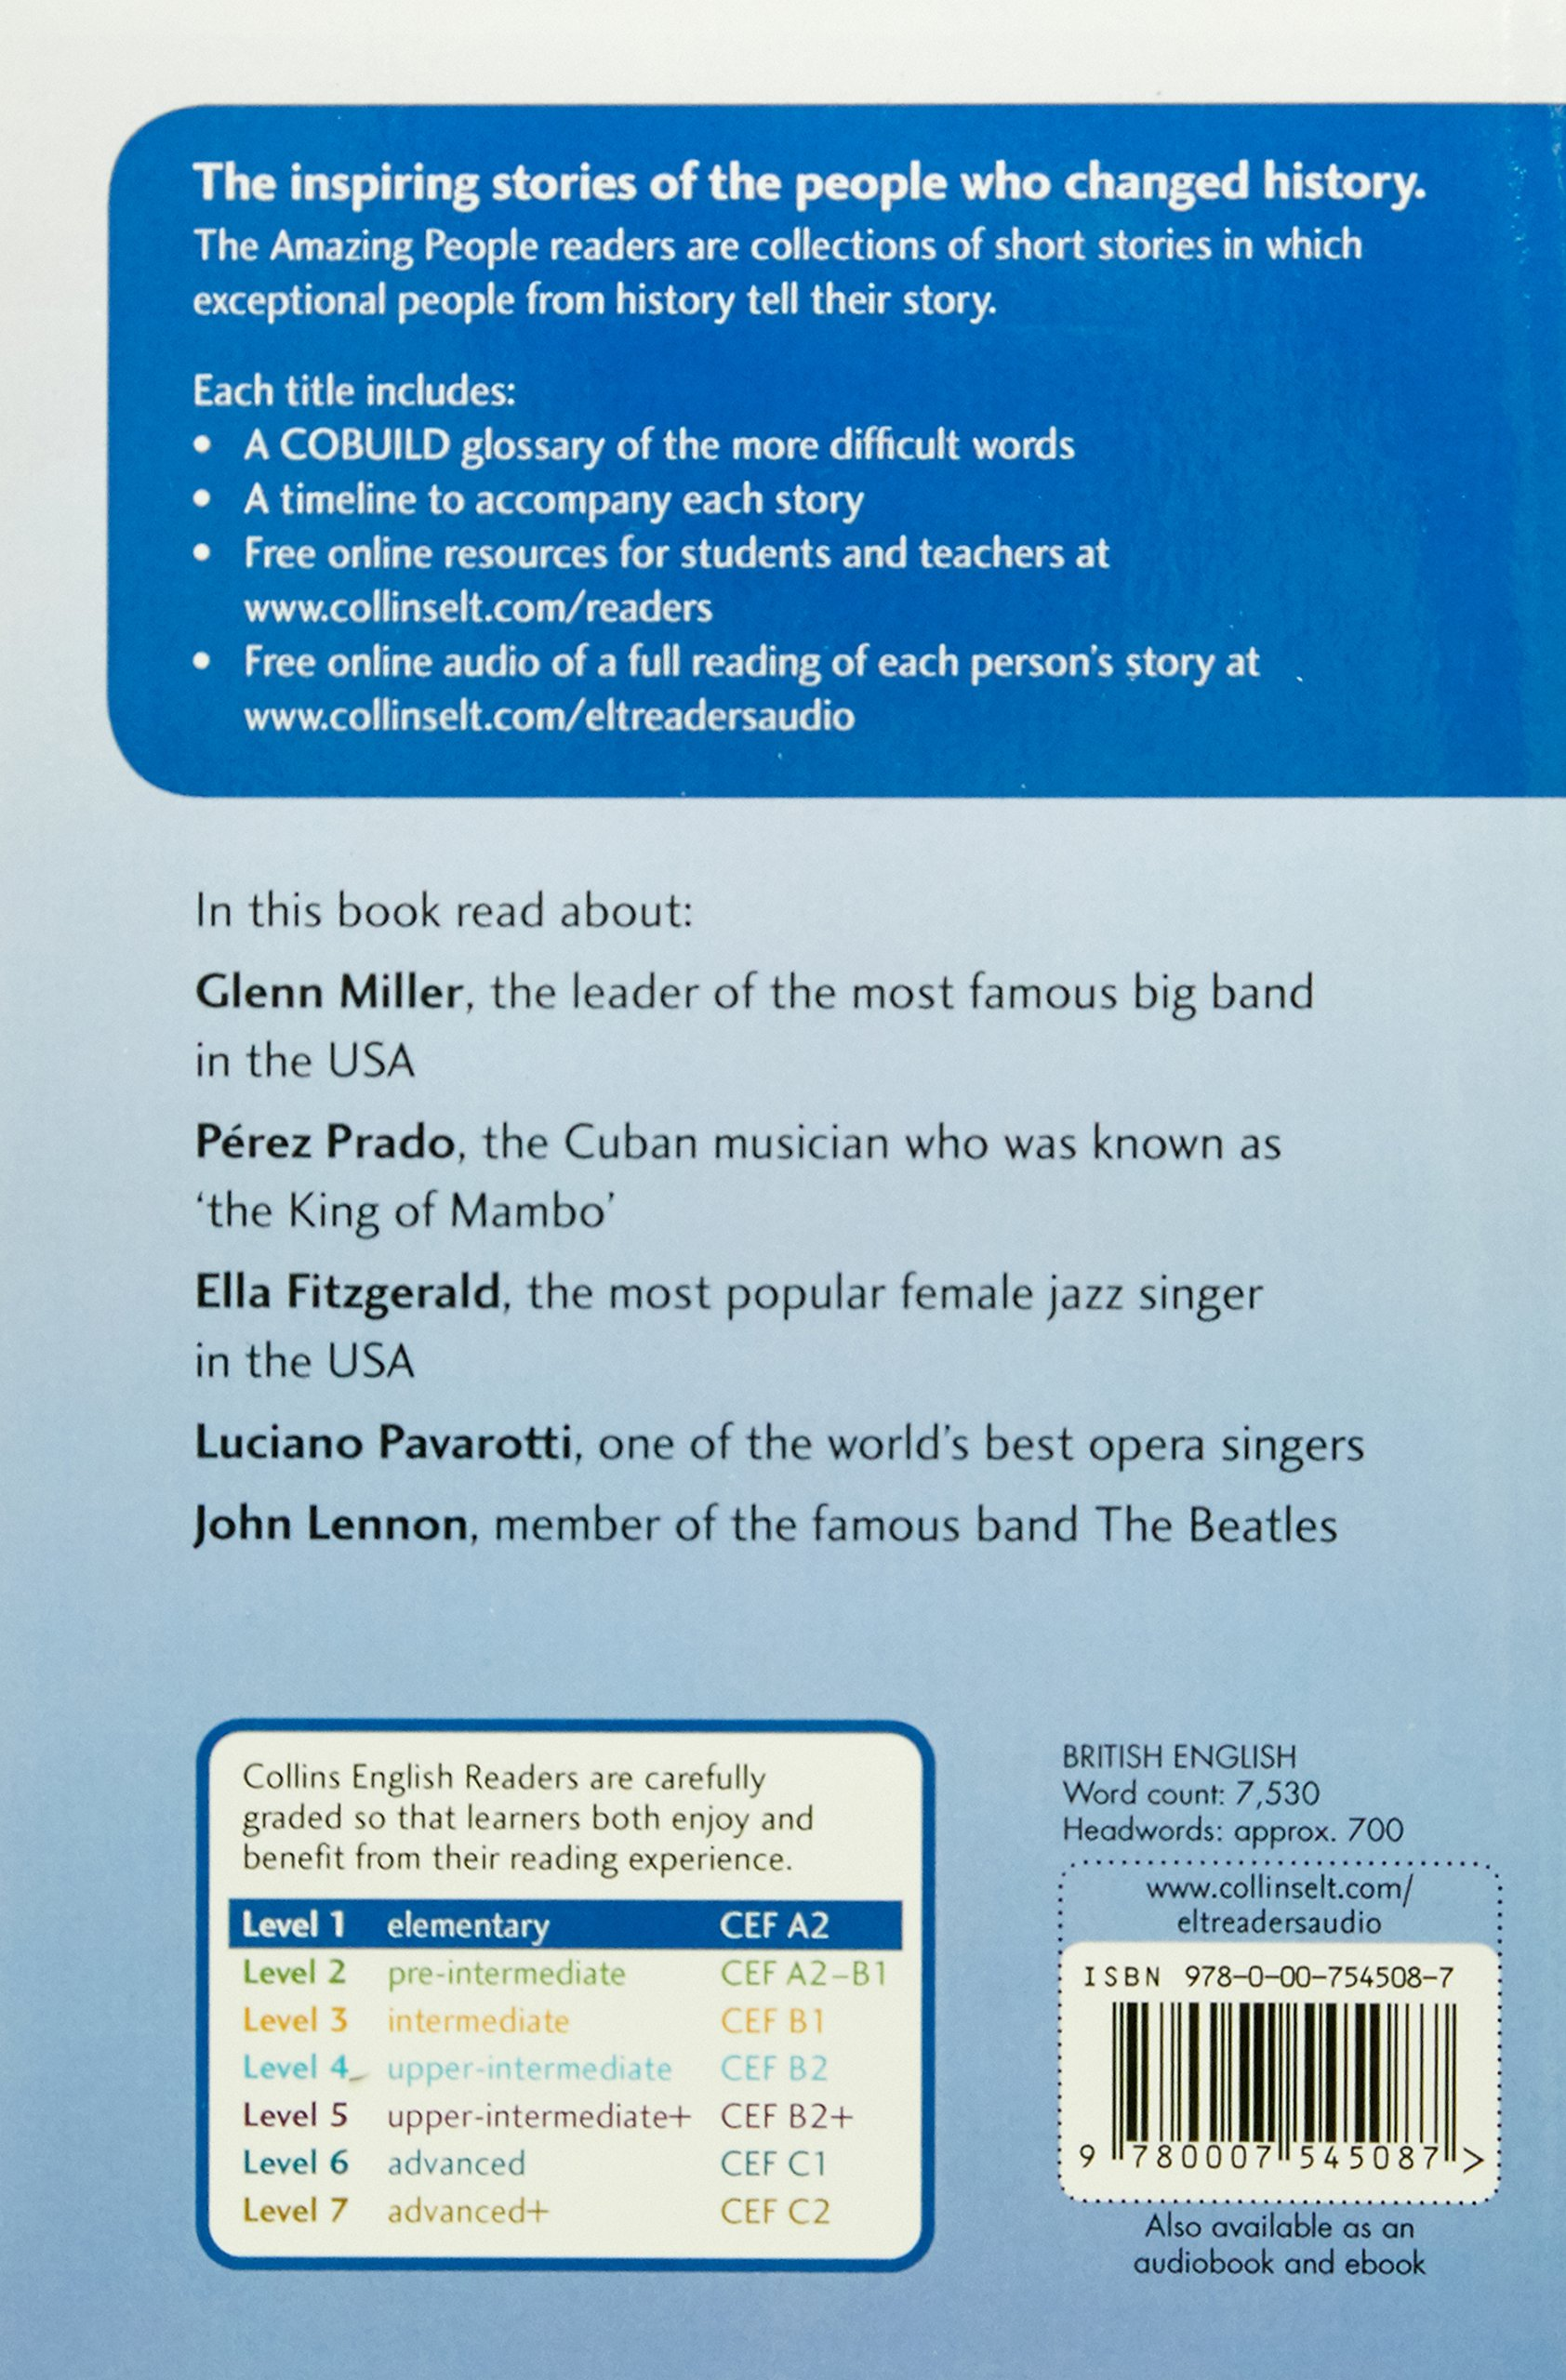 Collins Elt Readers — Amazing Performers (Level 1) (Collins English Readers) by HarperCollins UK